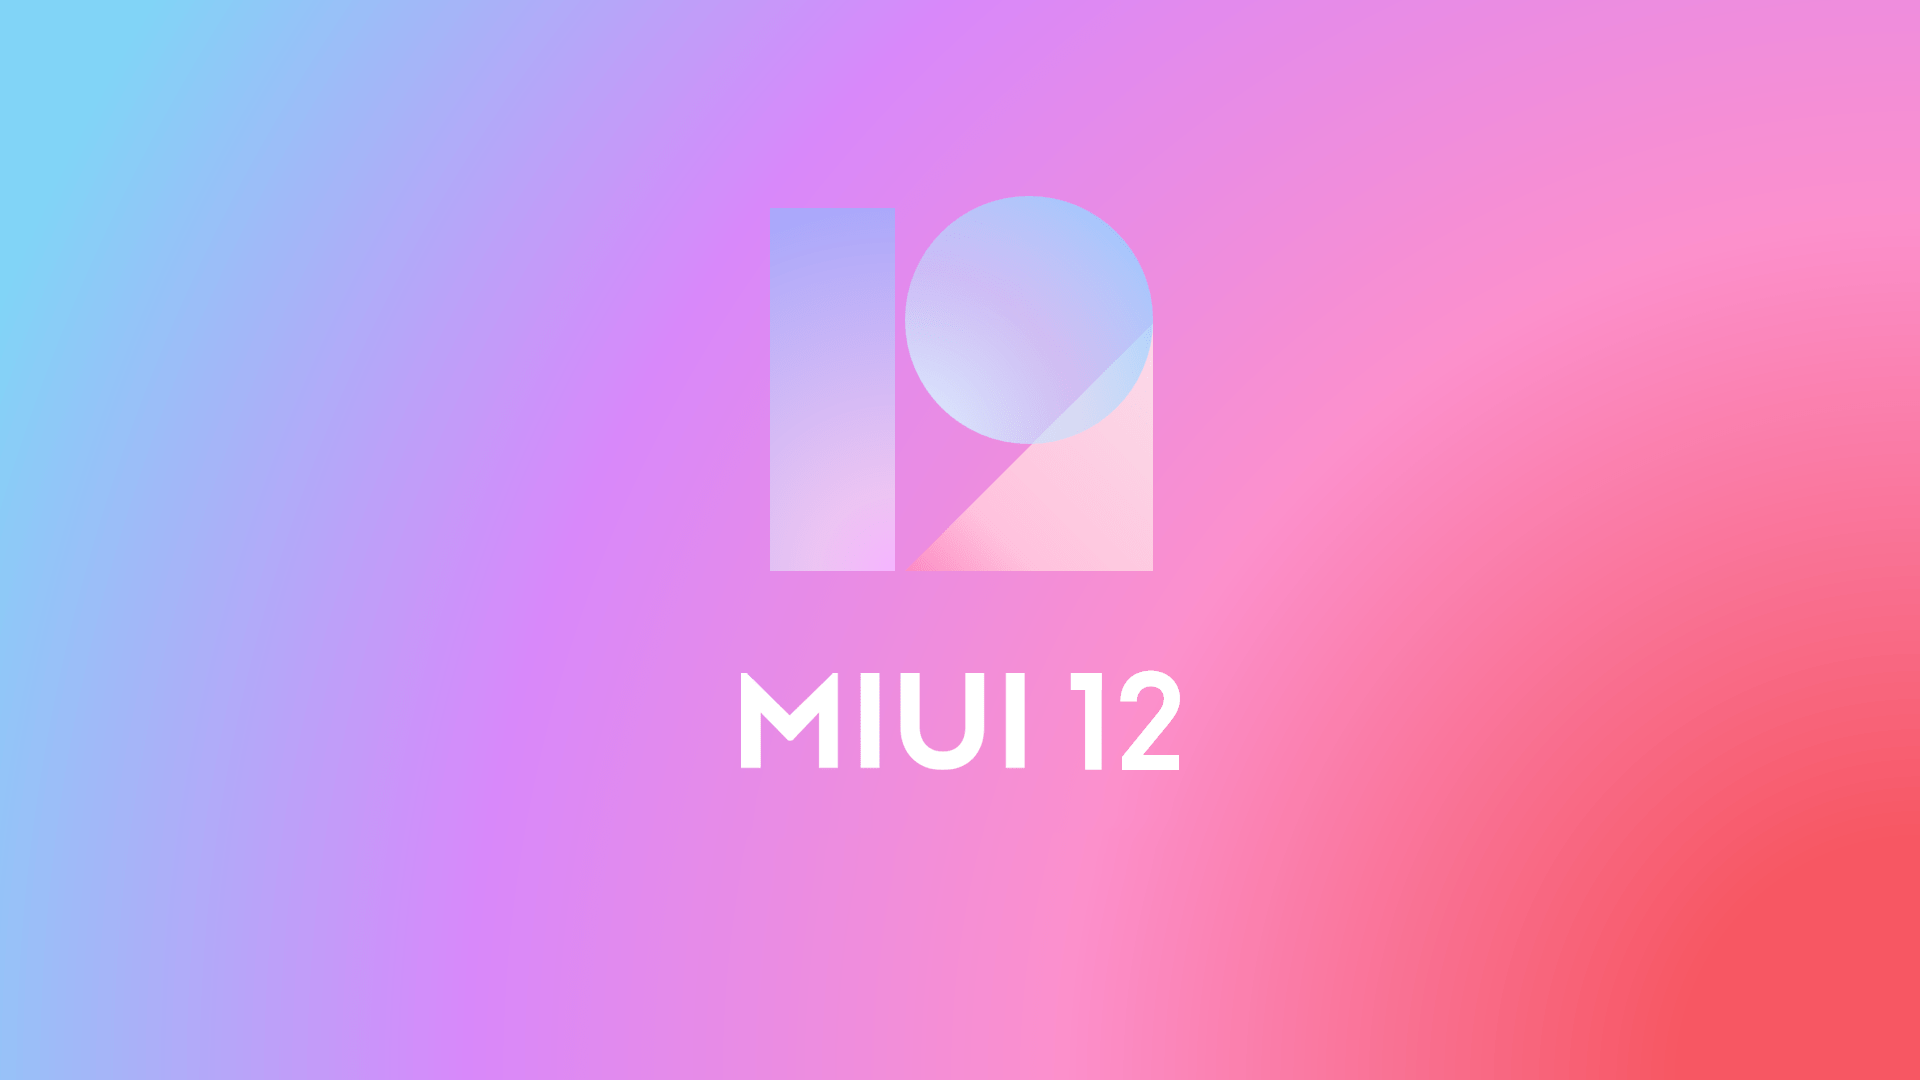 miui 12 offical poster